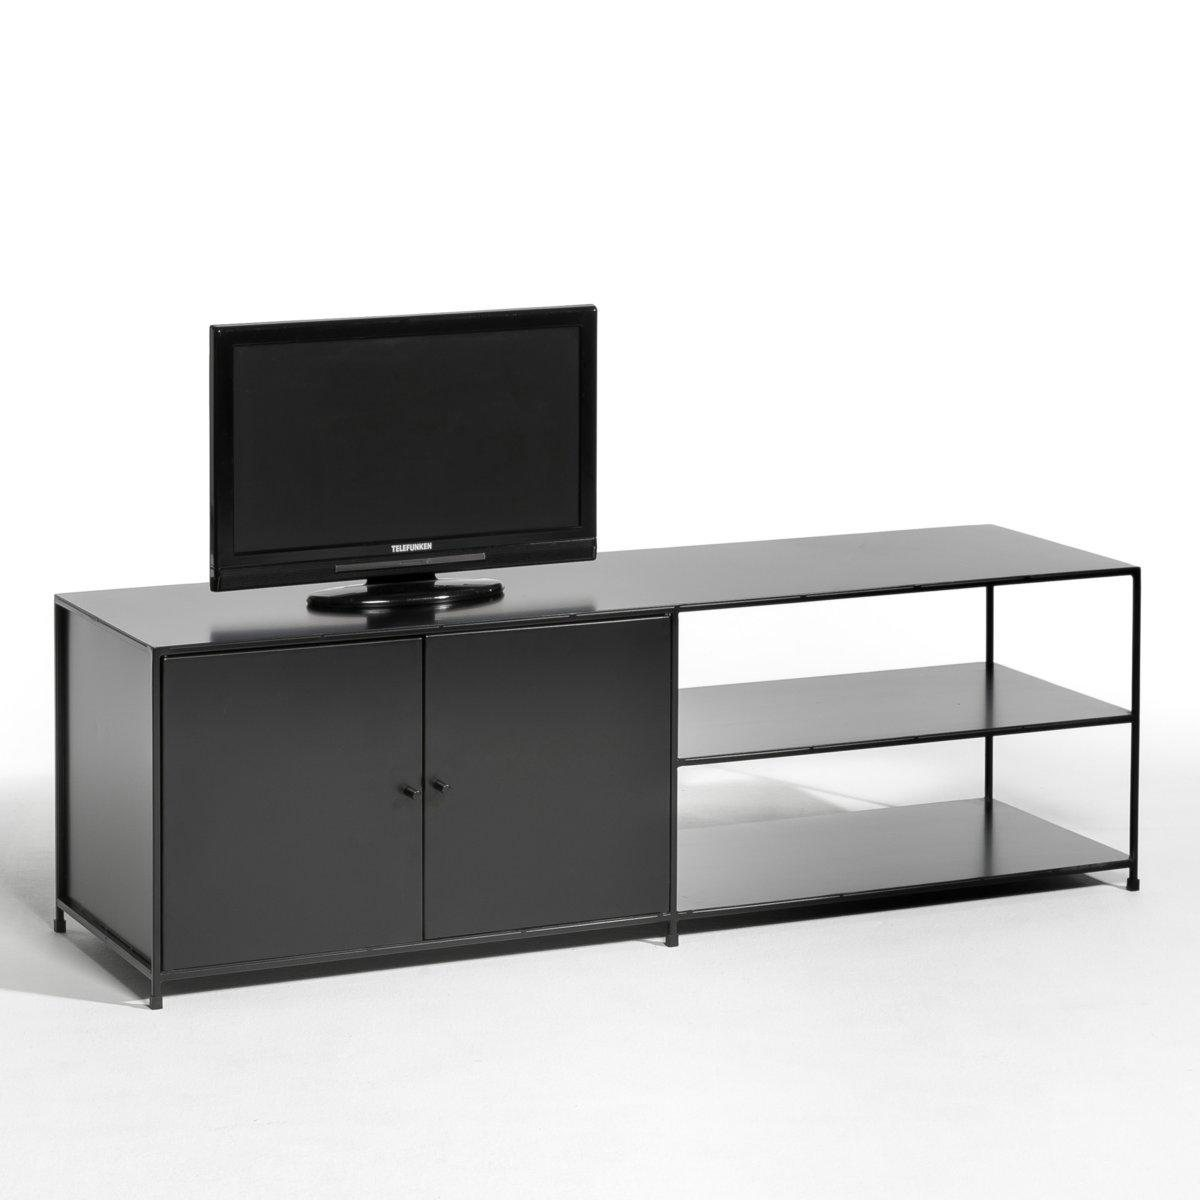 la redoute soldes meubles buffet meuble de mercerie 9 tiroirs lunja la redoute meuble tv hiba. Black Bedroom Furniture Sets. Home Design Ideas